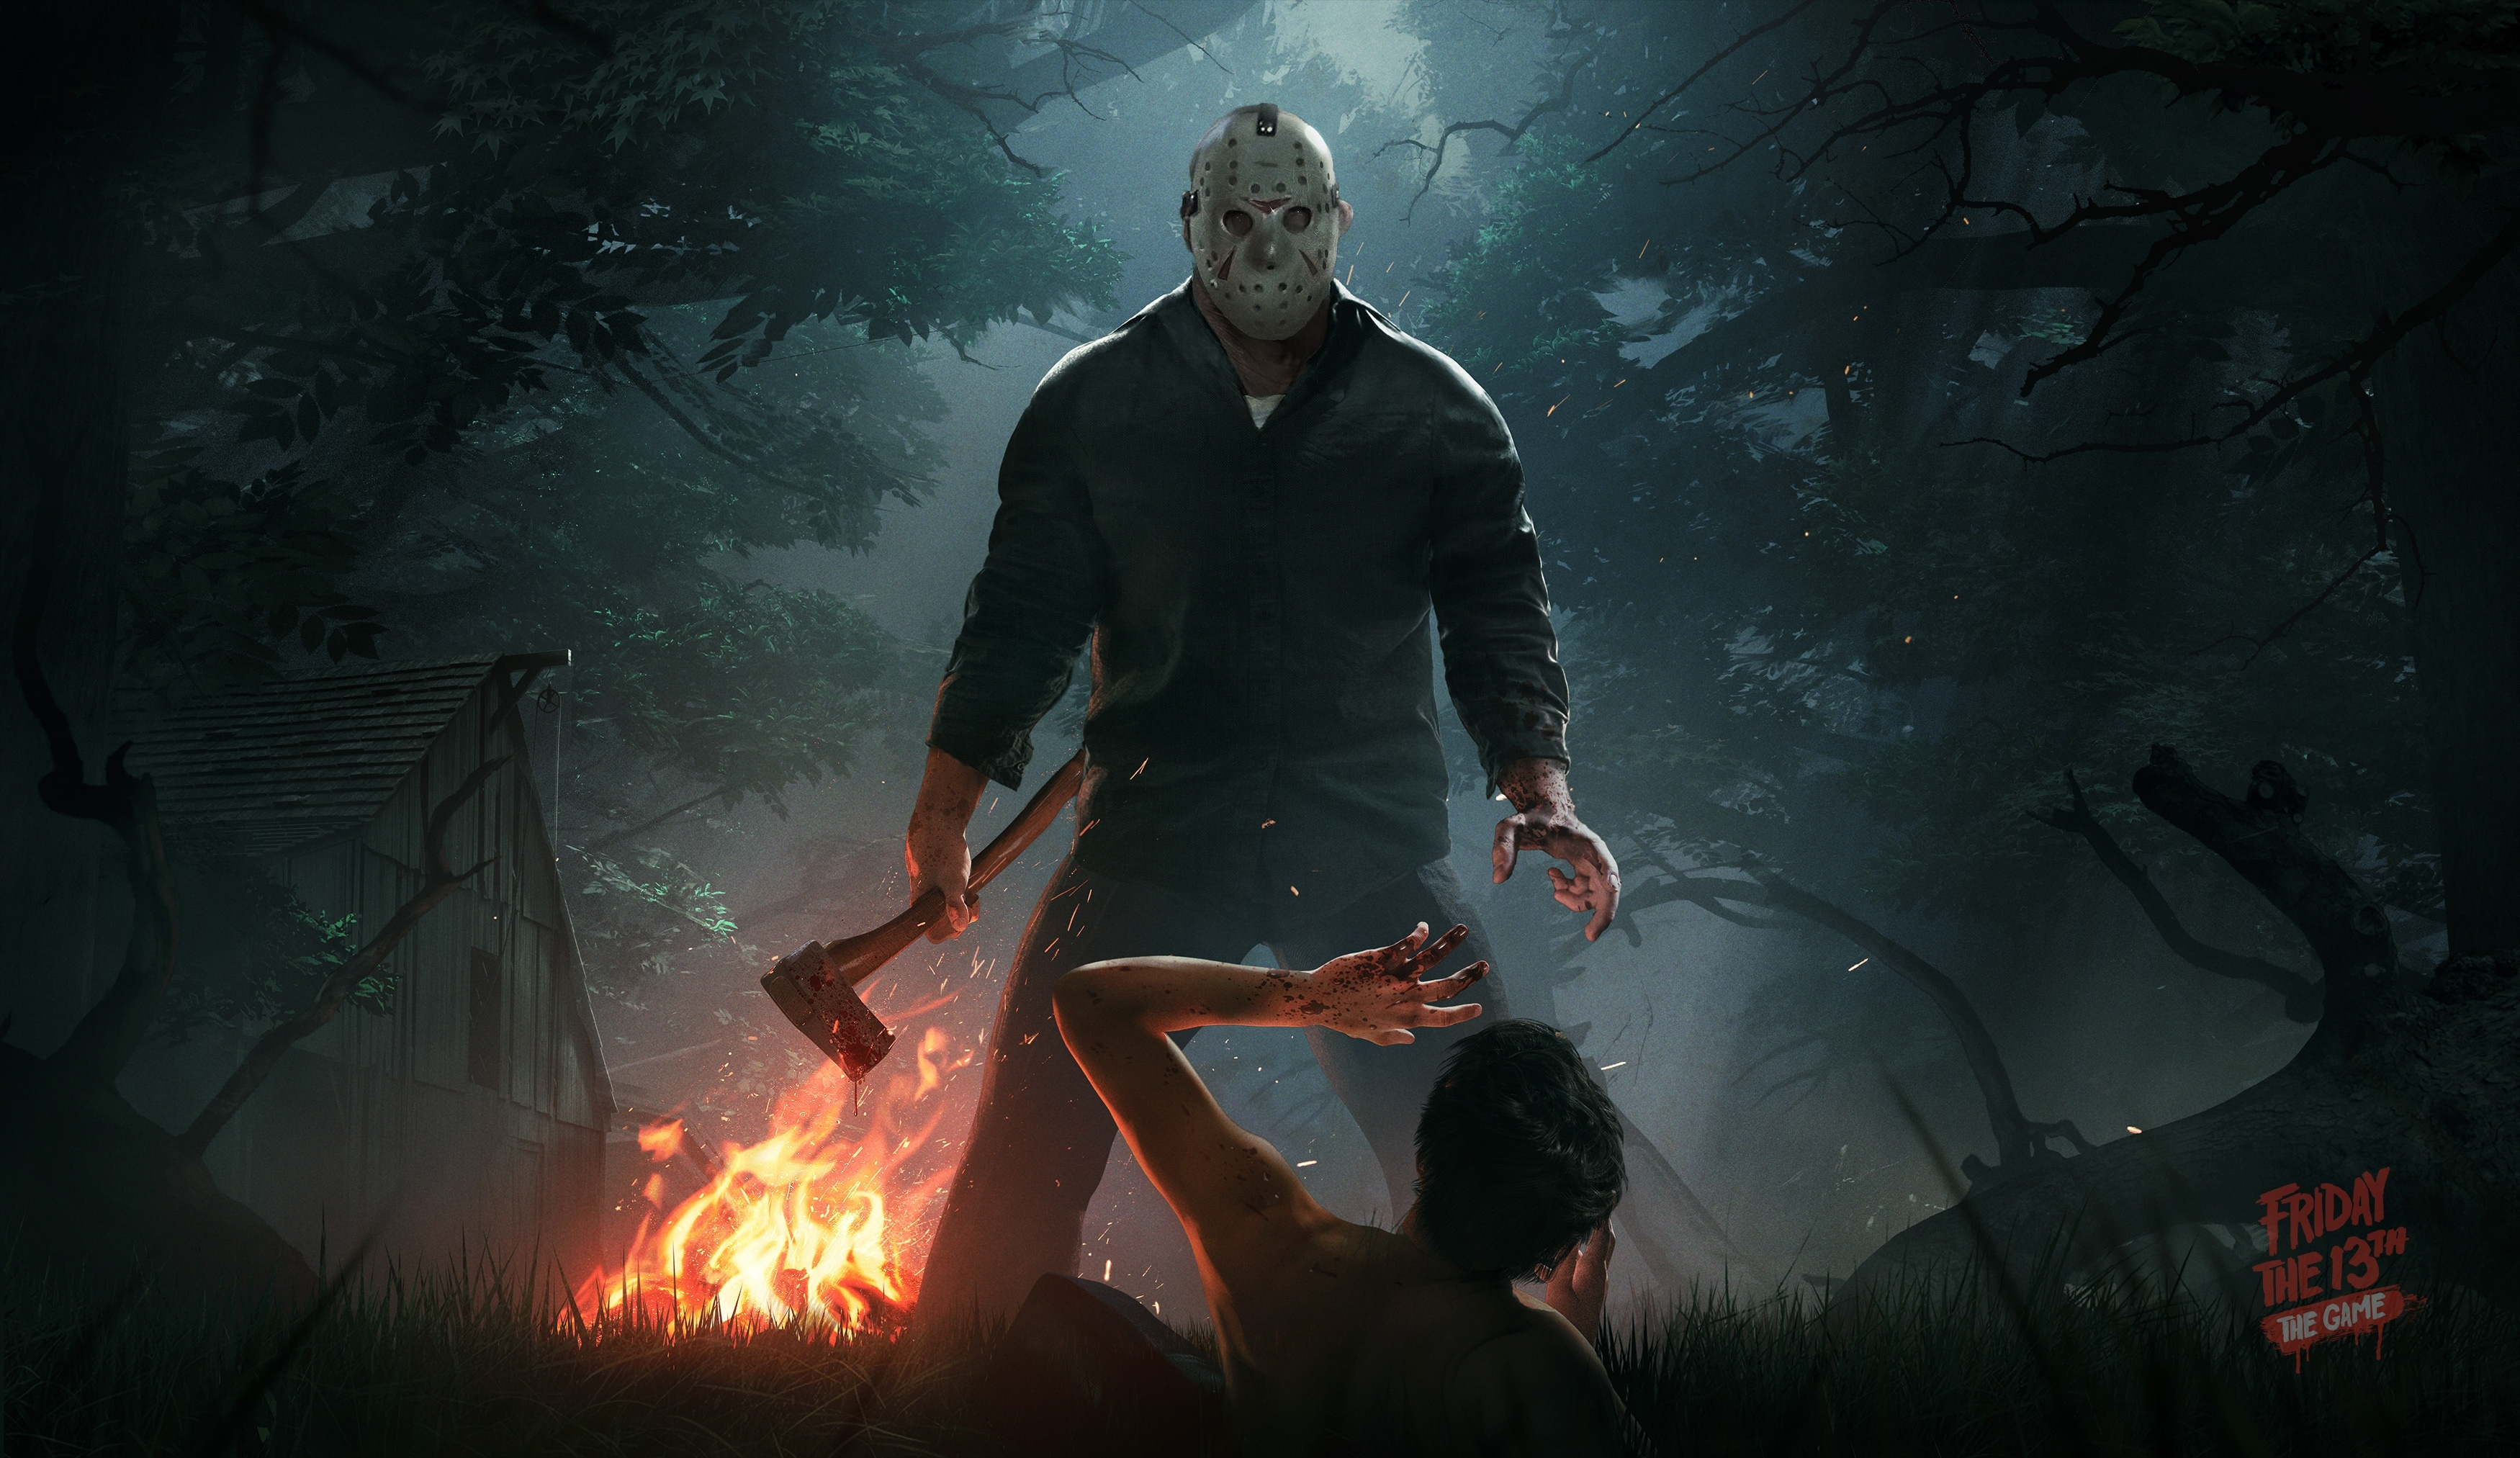 21 friday the 13th: the game hd wallpapers | background images